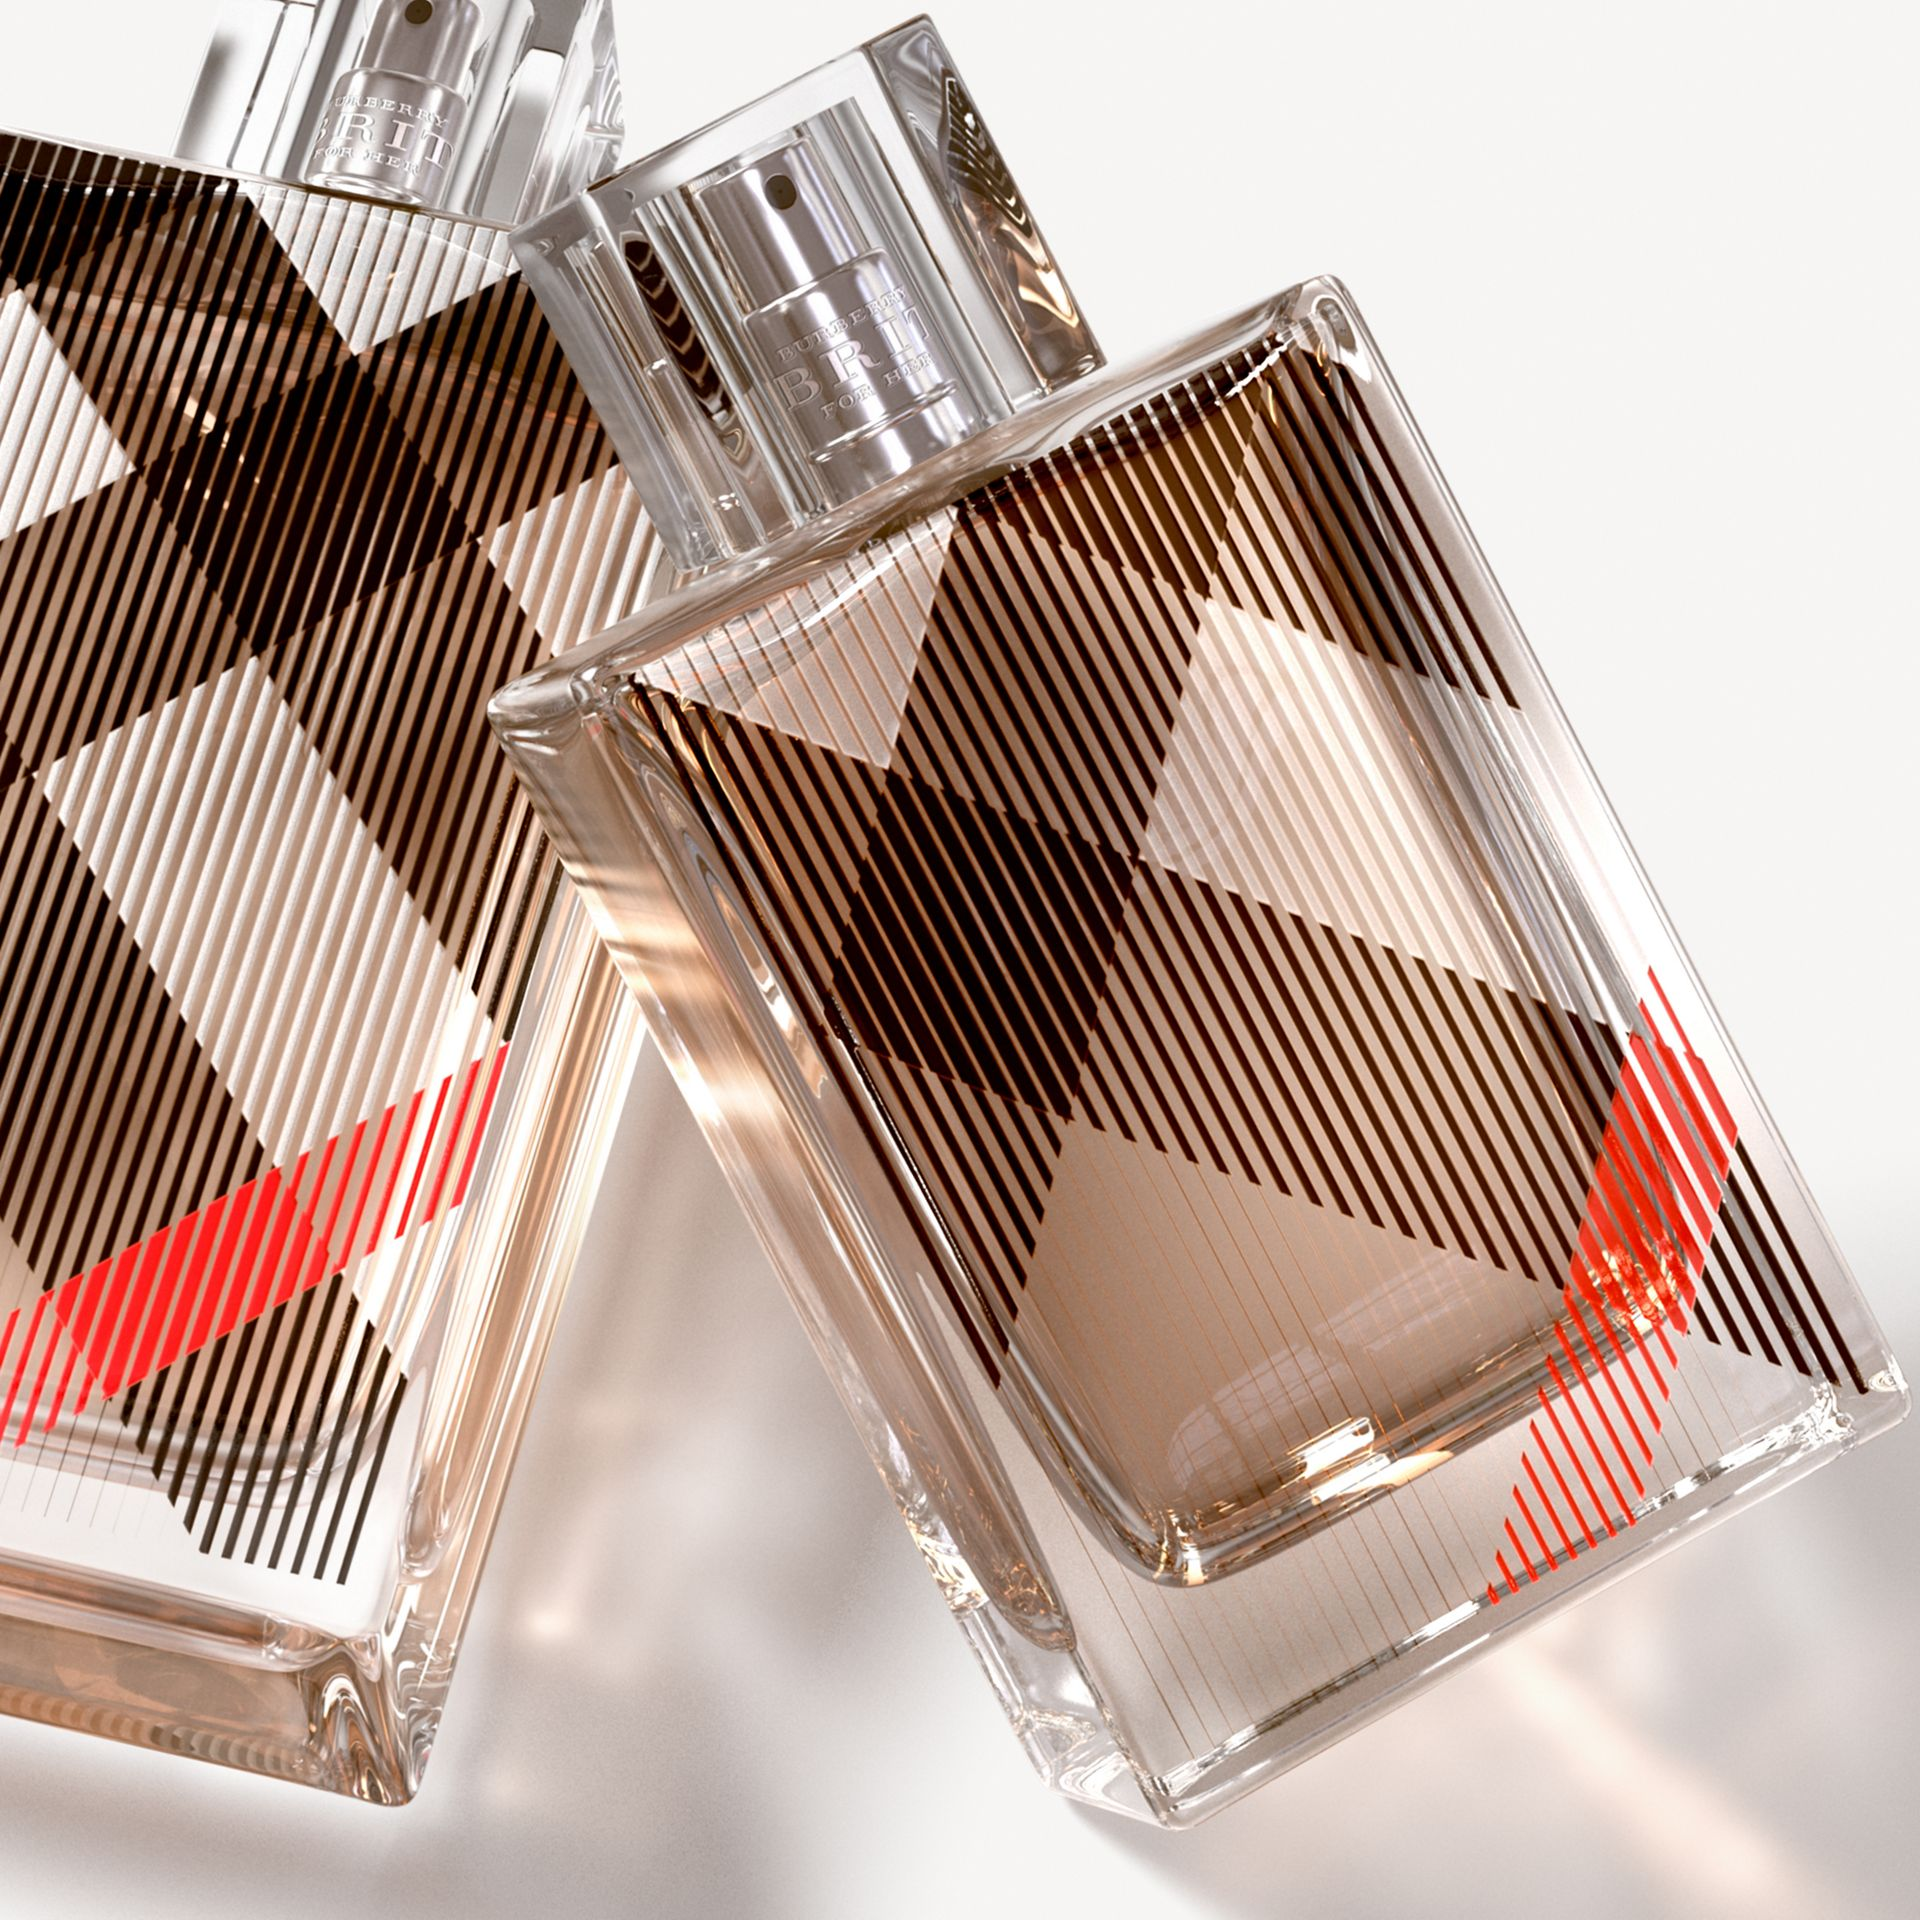 Burberry Brit For Her Eau de Parfum 50 ml - immagine della galleria 2